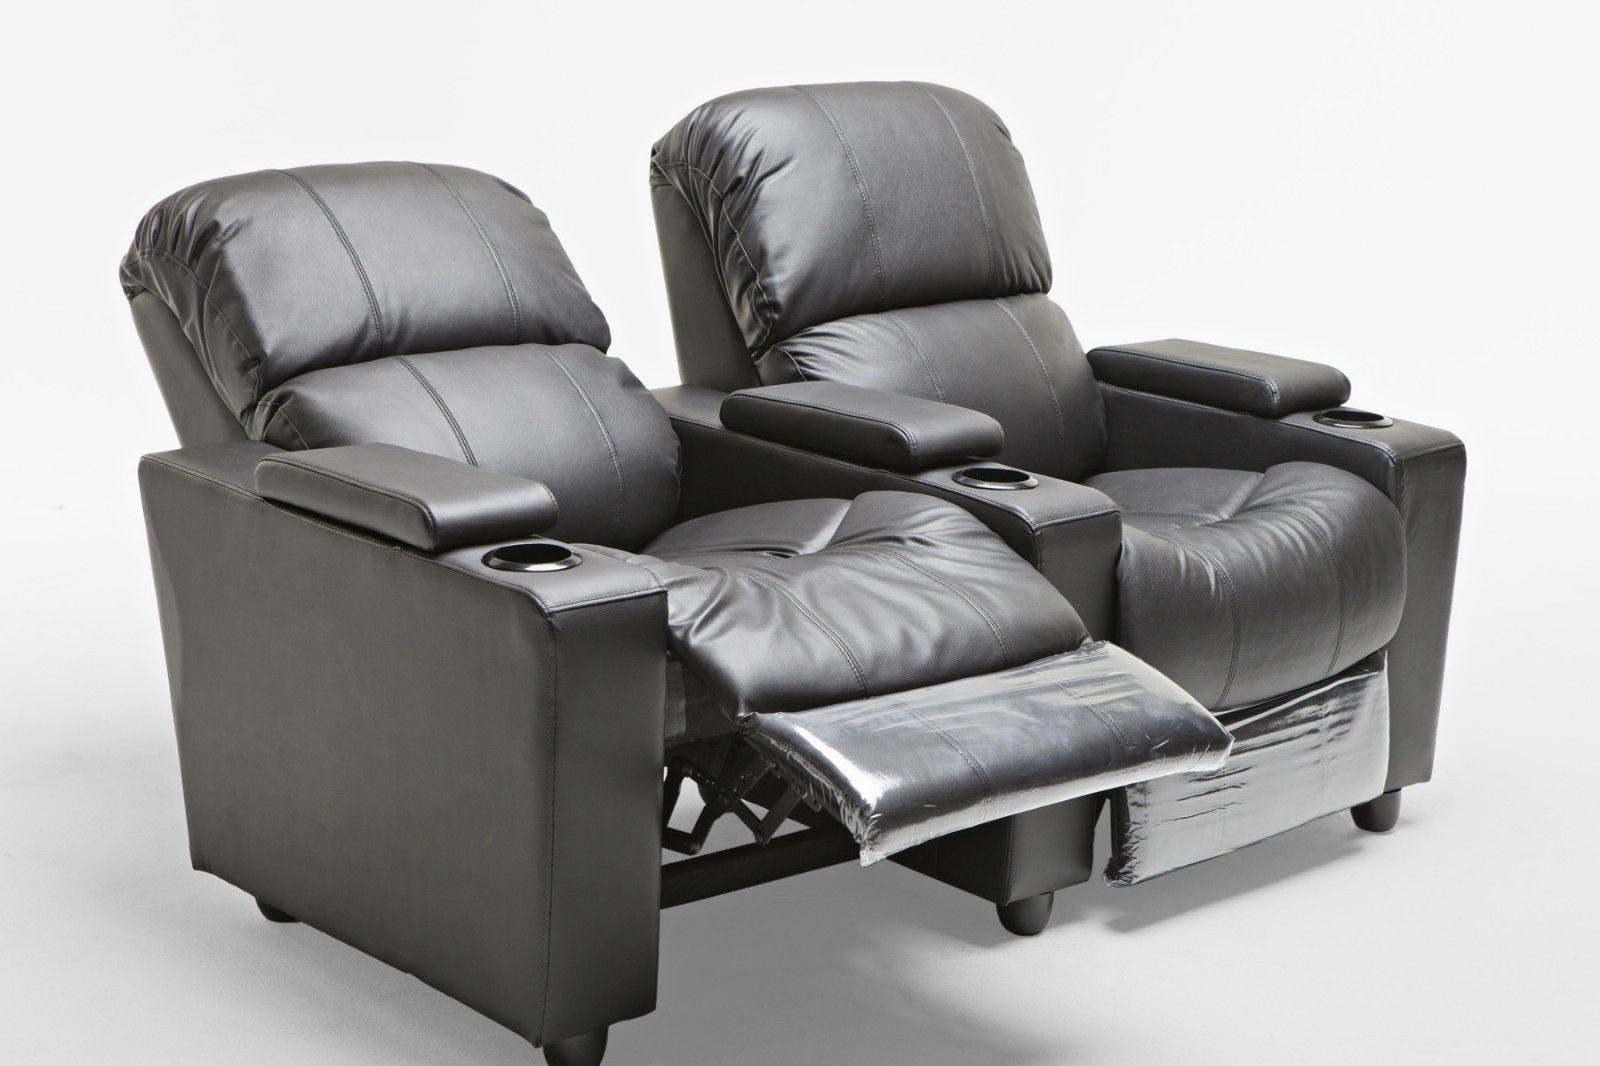 Image Gallery & Sophie Leather 2 Seater Home Theatre Recliner Sofa Lounge with Cup ... islam-shia.org